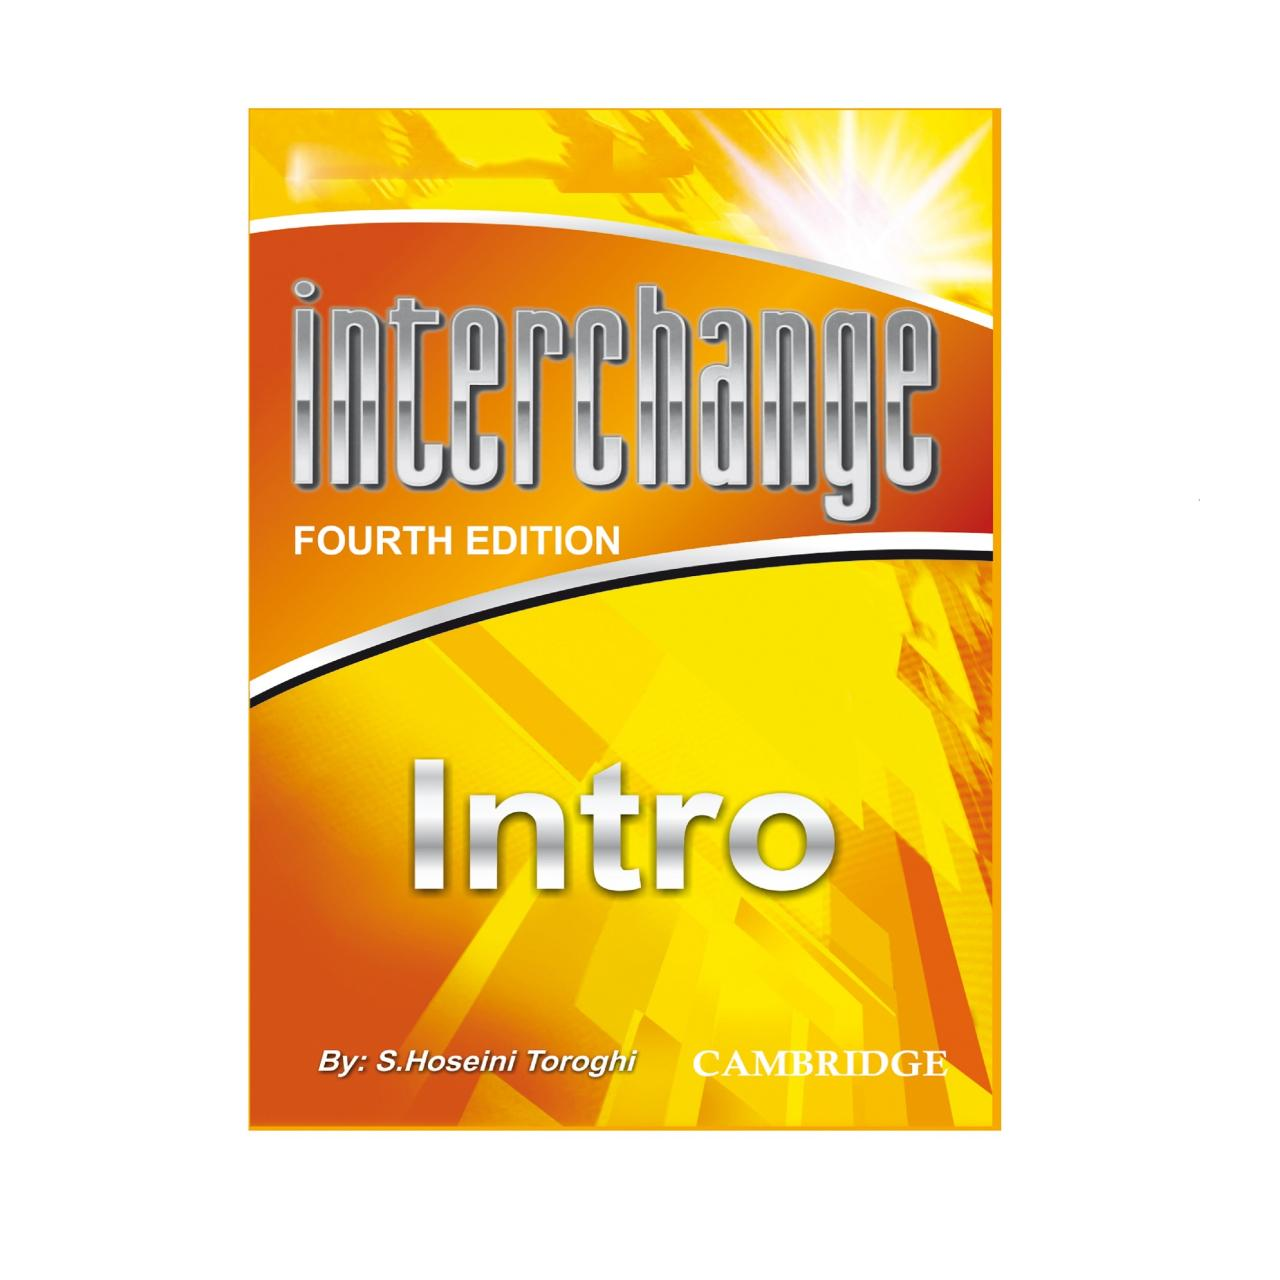 فلش کارت interchange Intro انتتشارات زبان پژوه